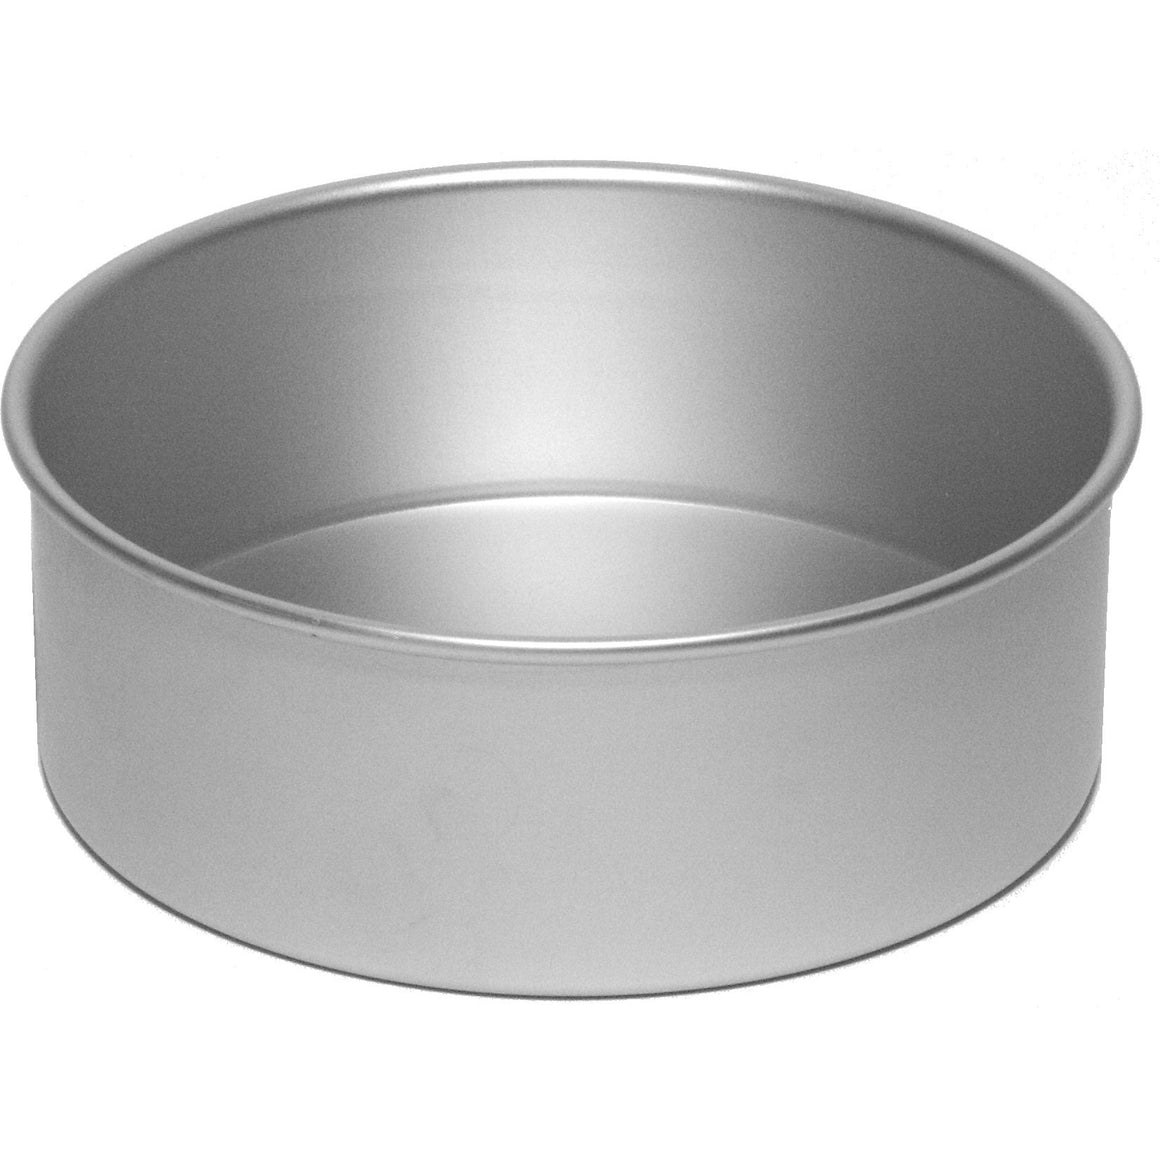 "Silverwood 10"" Deep Round Solid Base Cake Tin"